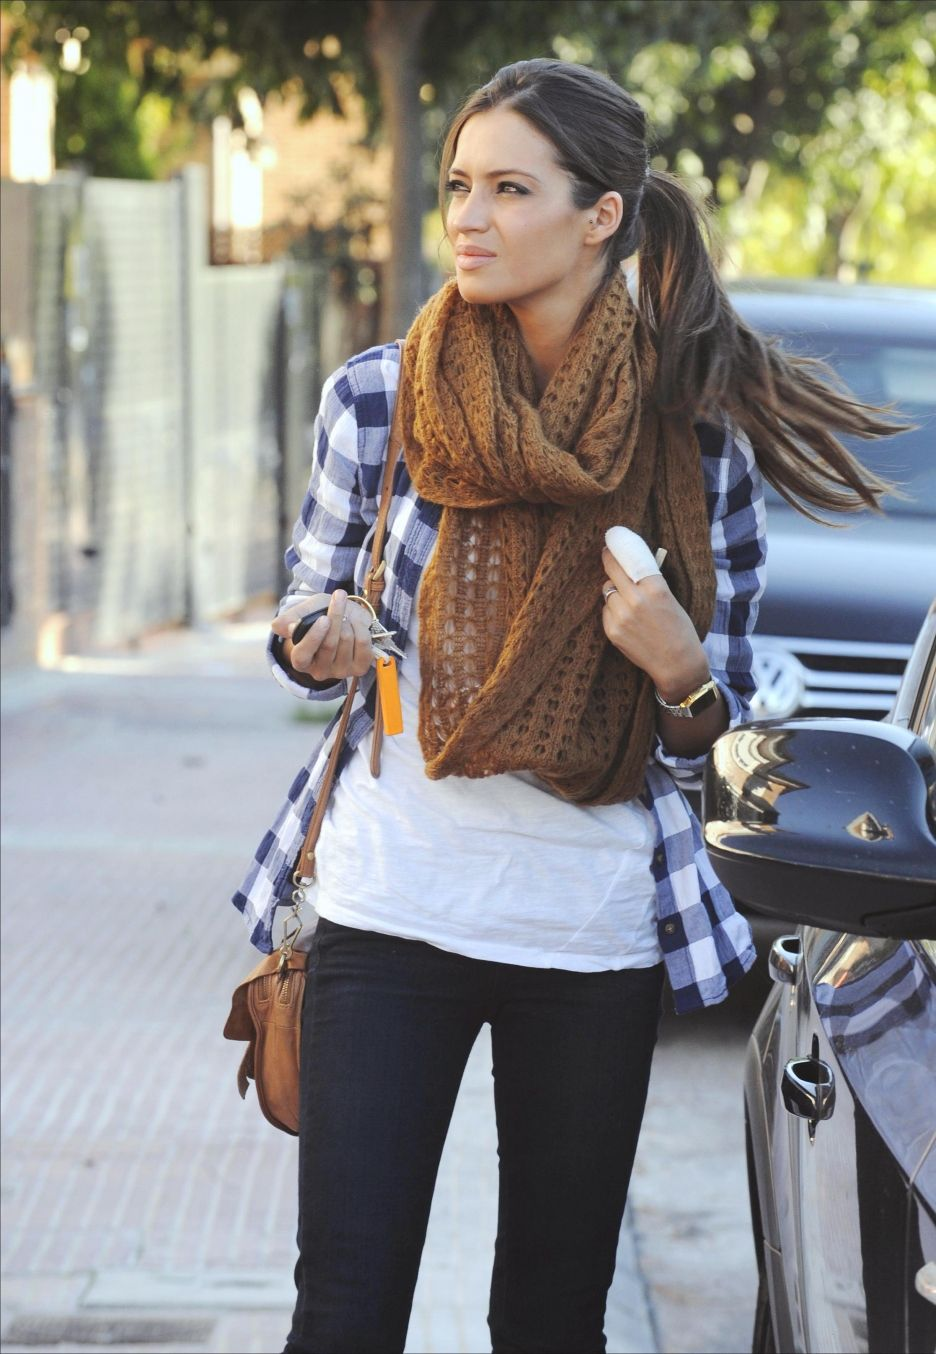 Fall Outfit: Brown/Tan Scarf + Blue & White Gingham Shirt + White Tank/Tee + Dark Skinnies